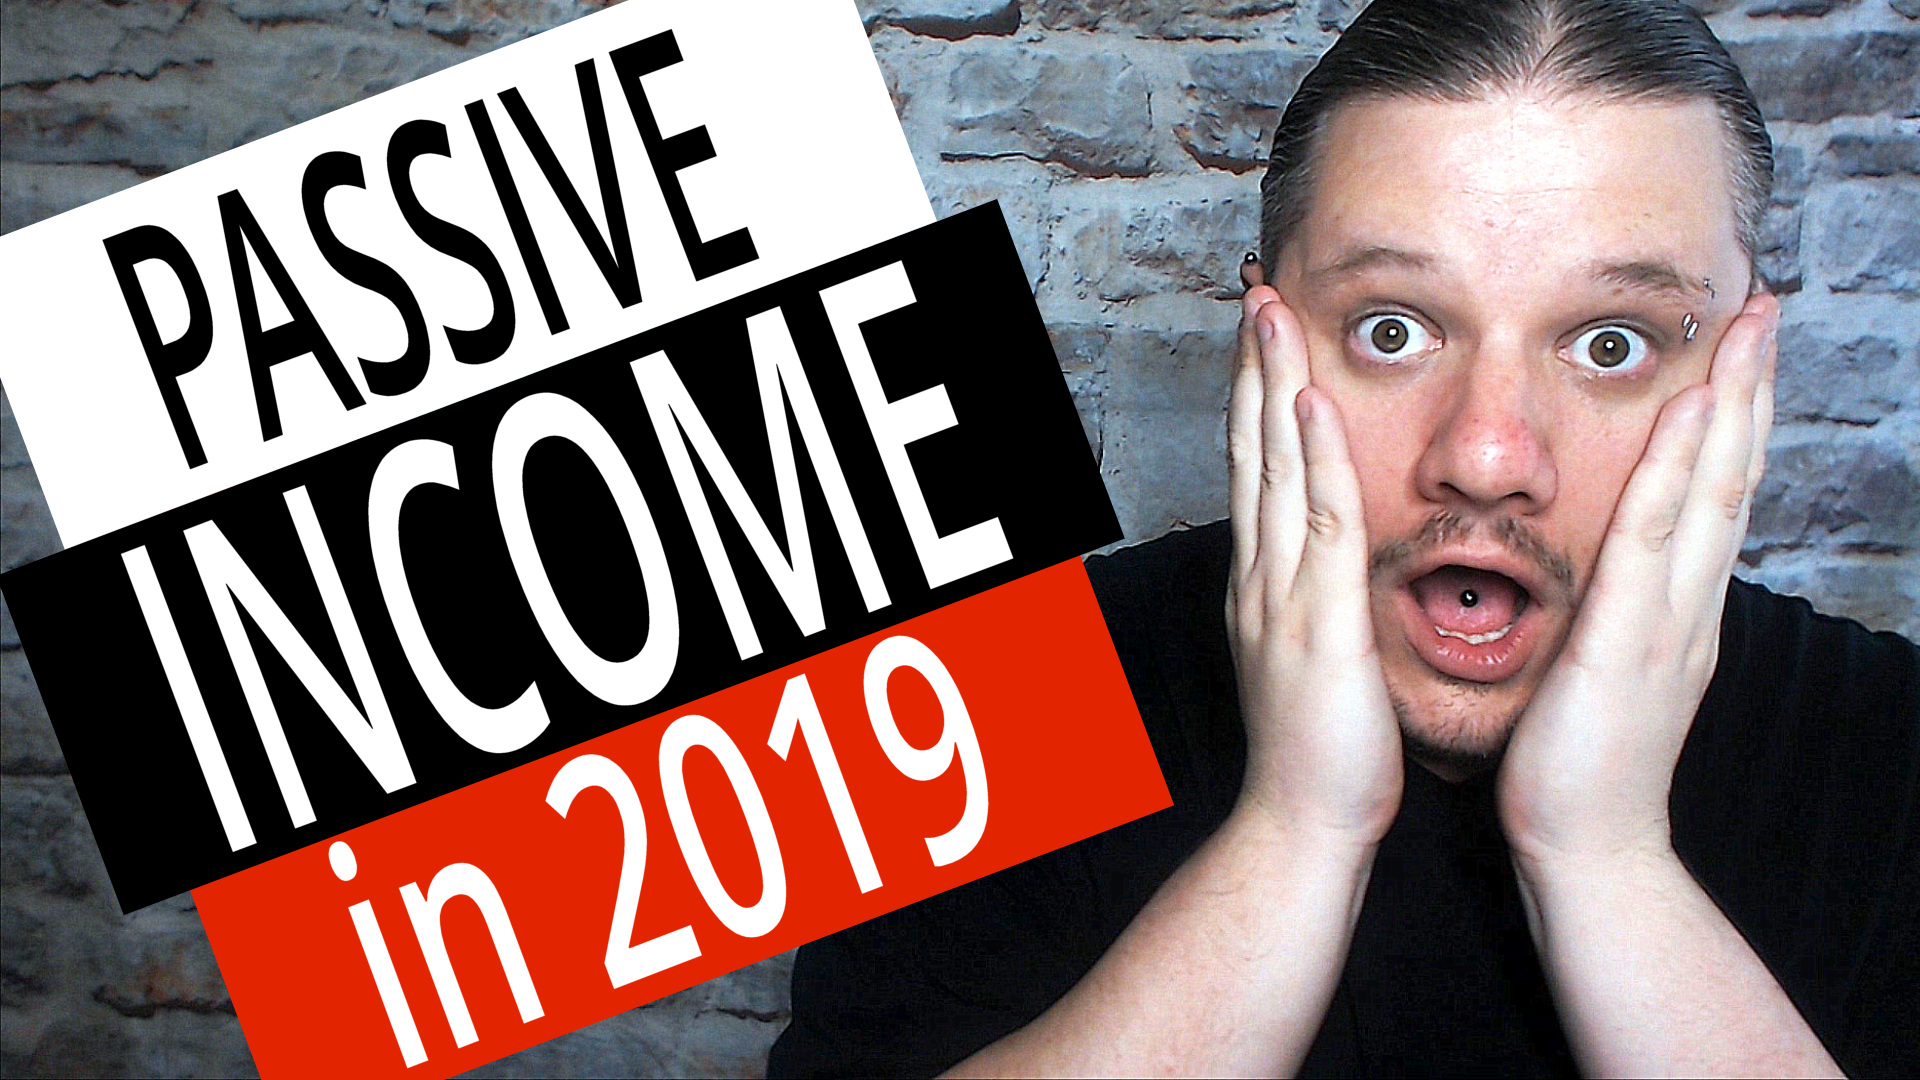 passive income,affiliate marketing,how to make passive income,how to make money online,passive income 2019,passive income in 2019,youtube passive income,youtube passive income 2019,make passive income,passive income ideas 2019,affiliate marketing tips,how to make money,make money online,passive income online,affiliate marketing for beginners,passive income ideas,affiliate marketing tutorial,how to make passive income on the internet,earning passive income